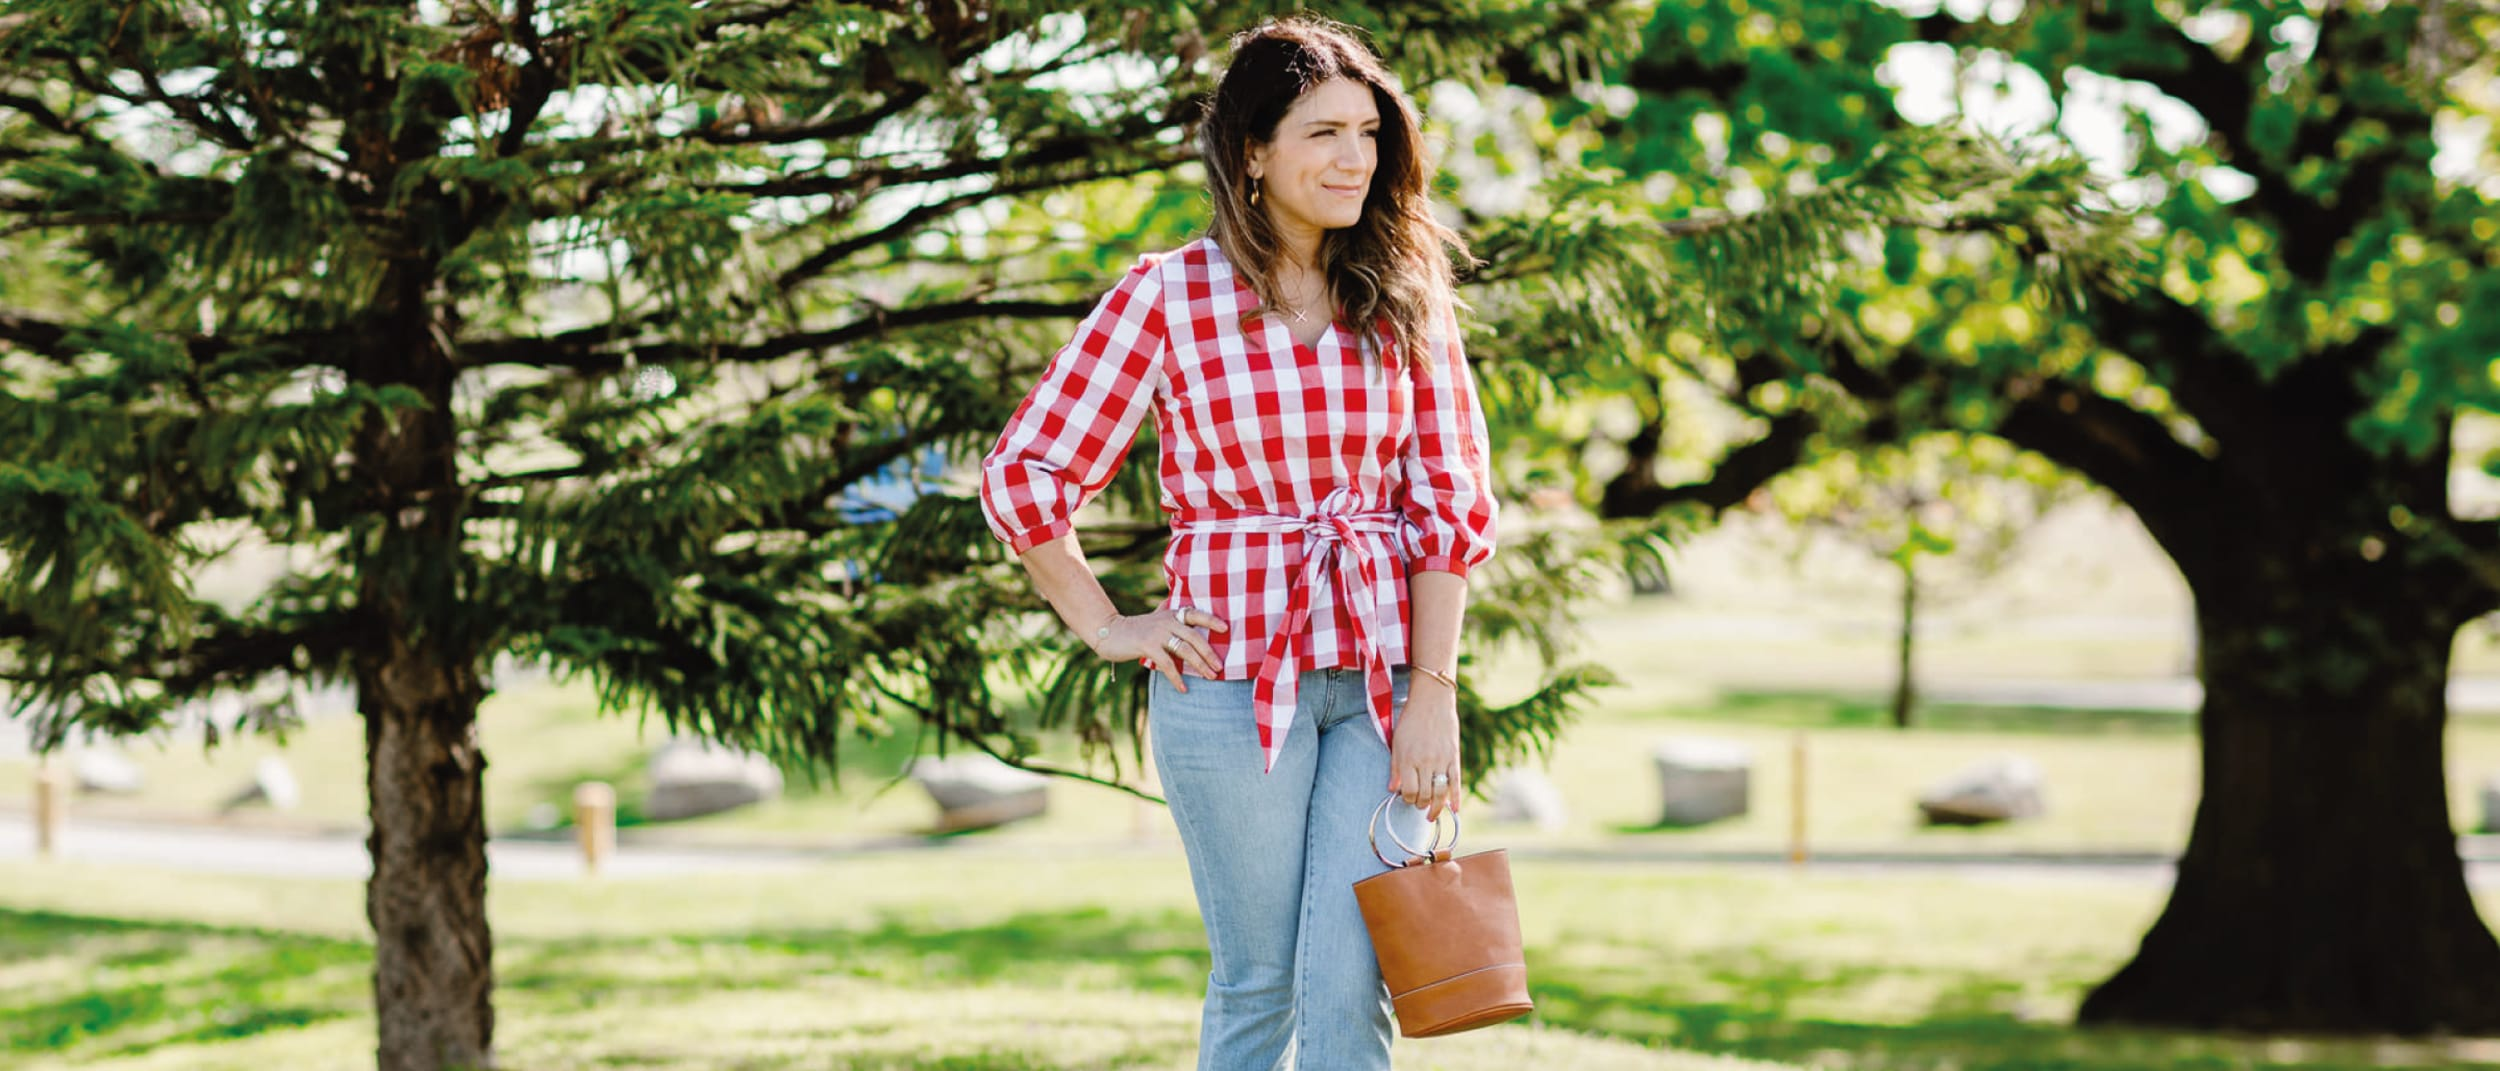 This season's prints from polka dots to stripes